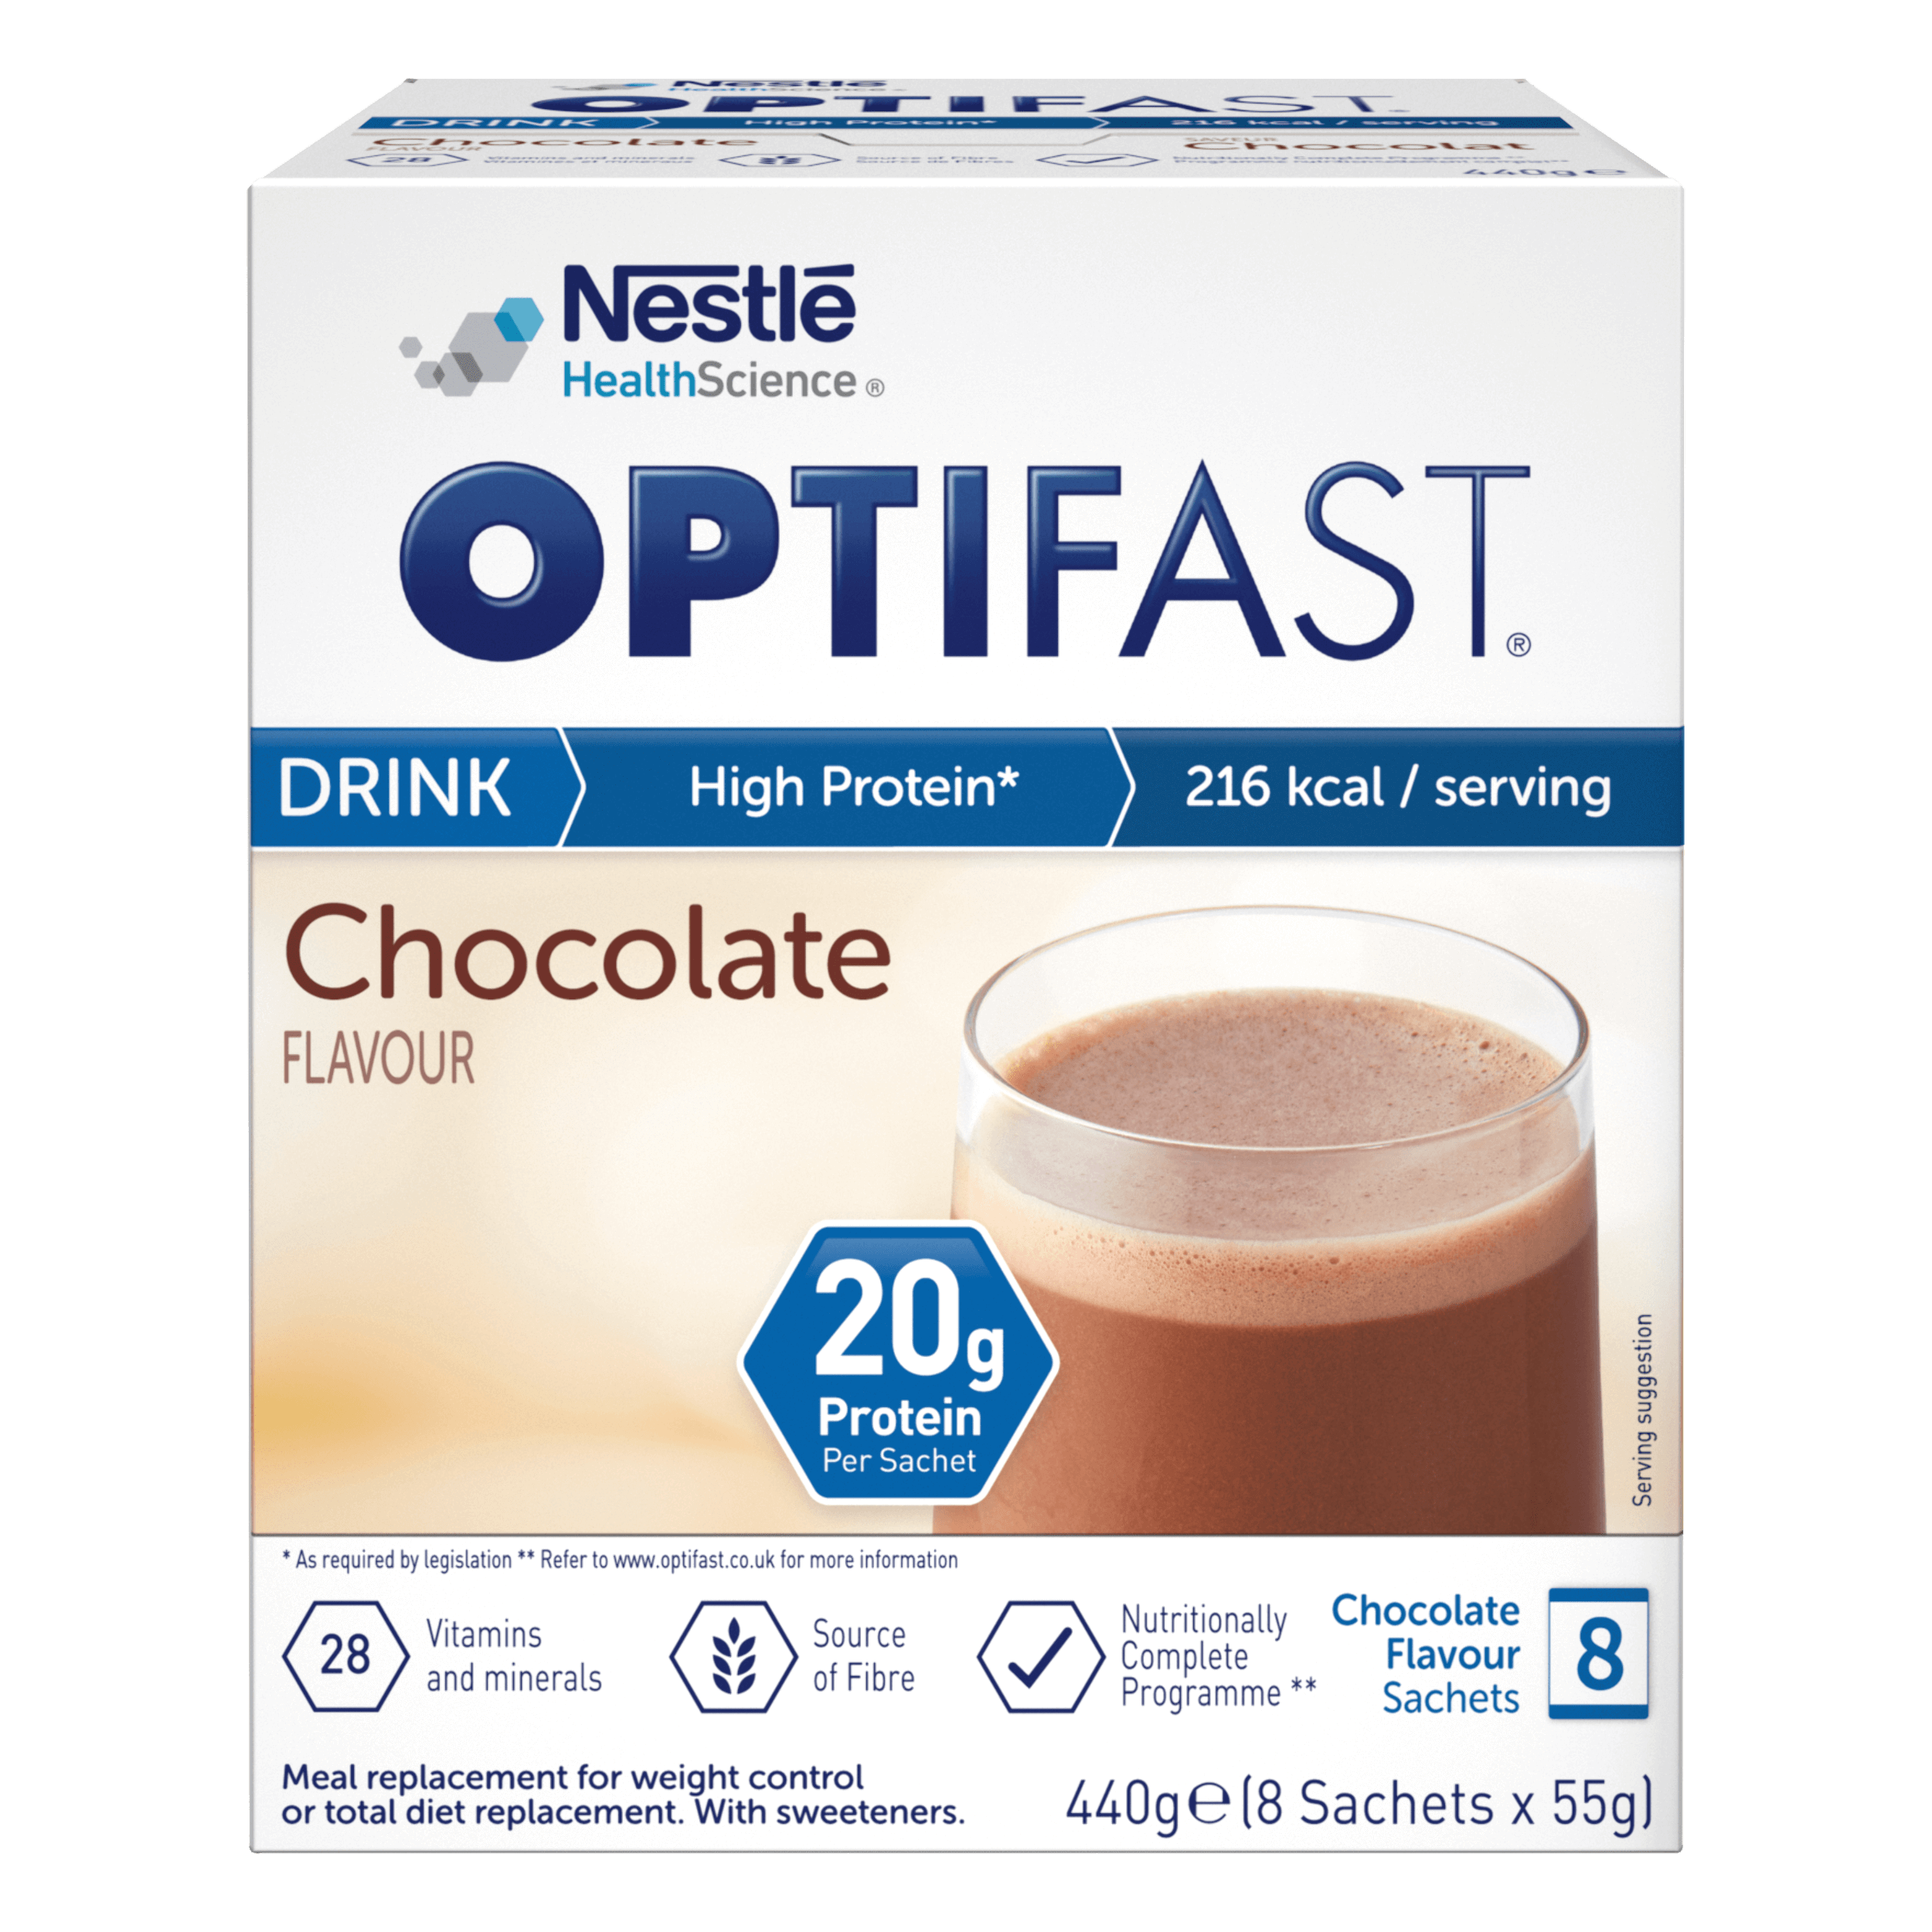 Image of the chocolate flavour OPTIFAST drink